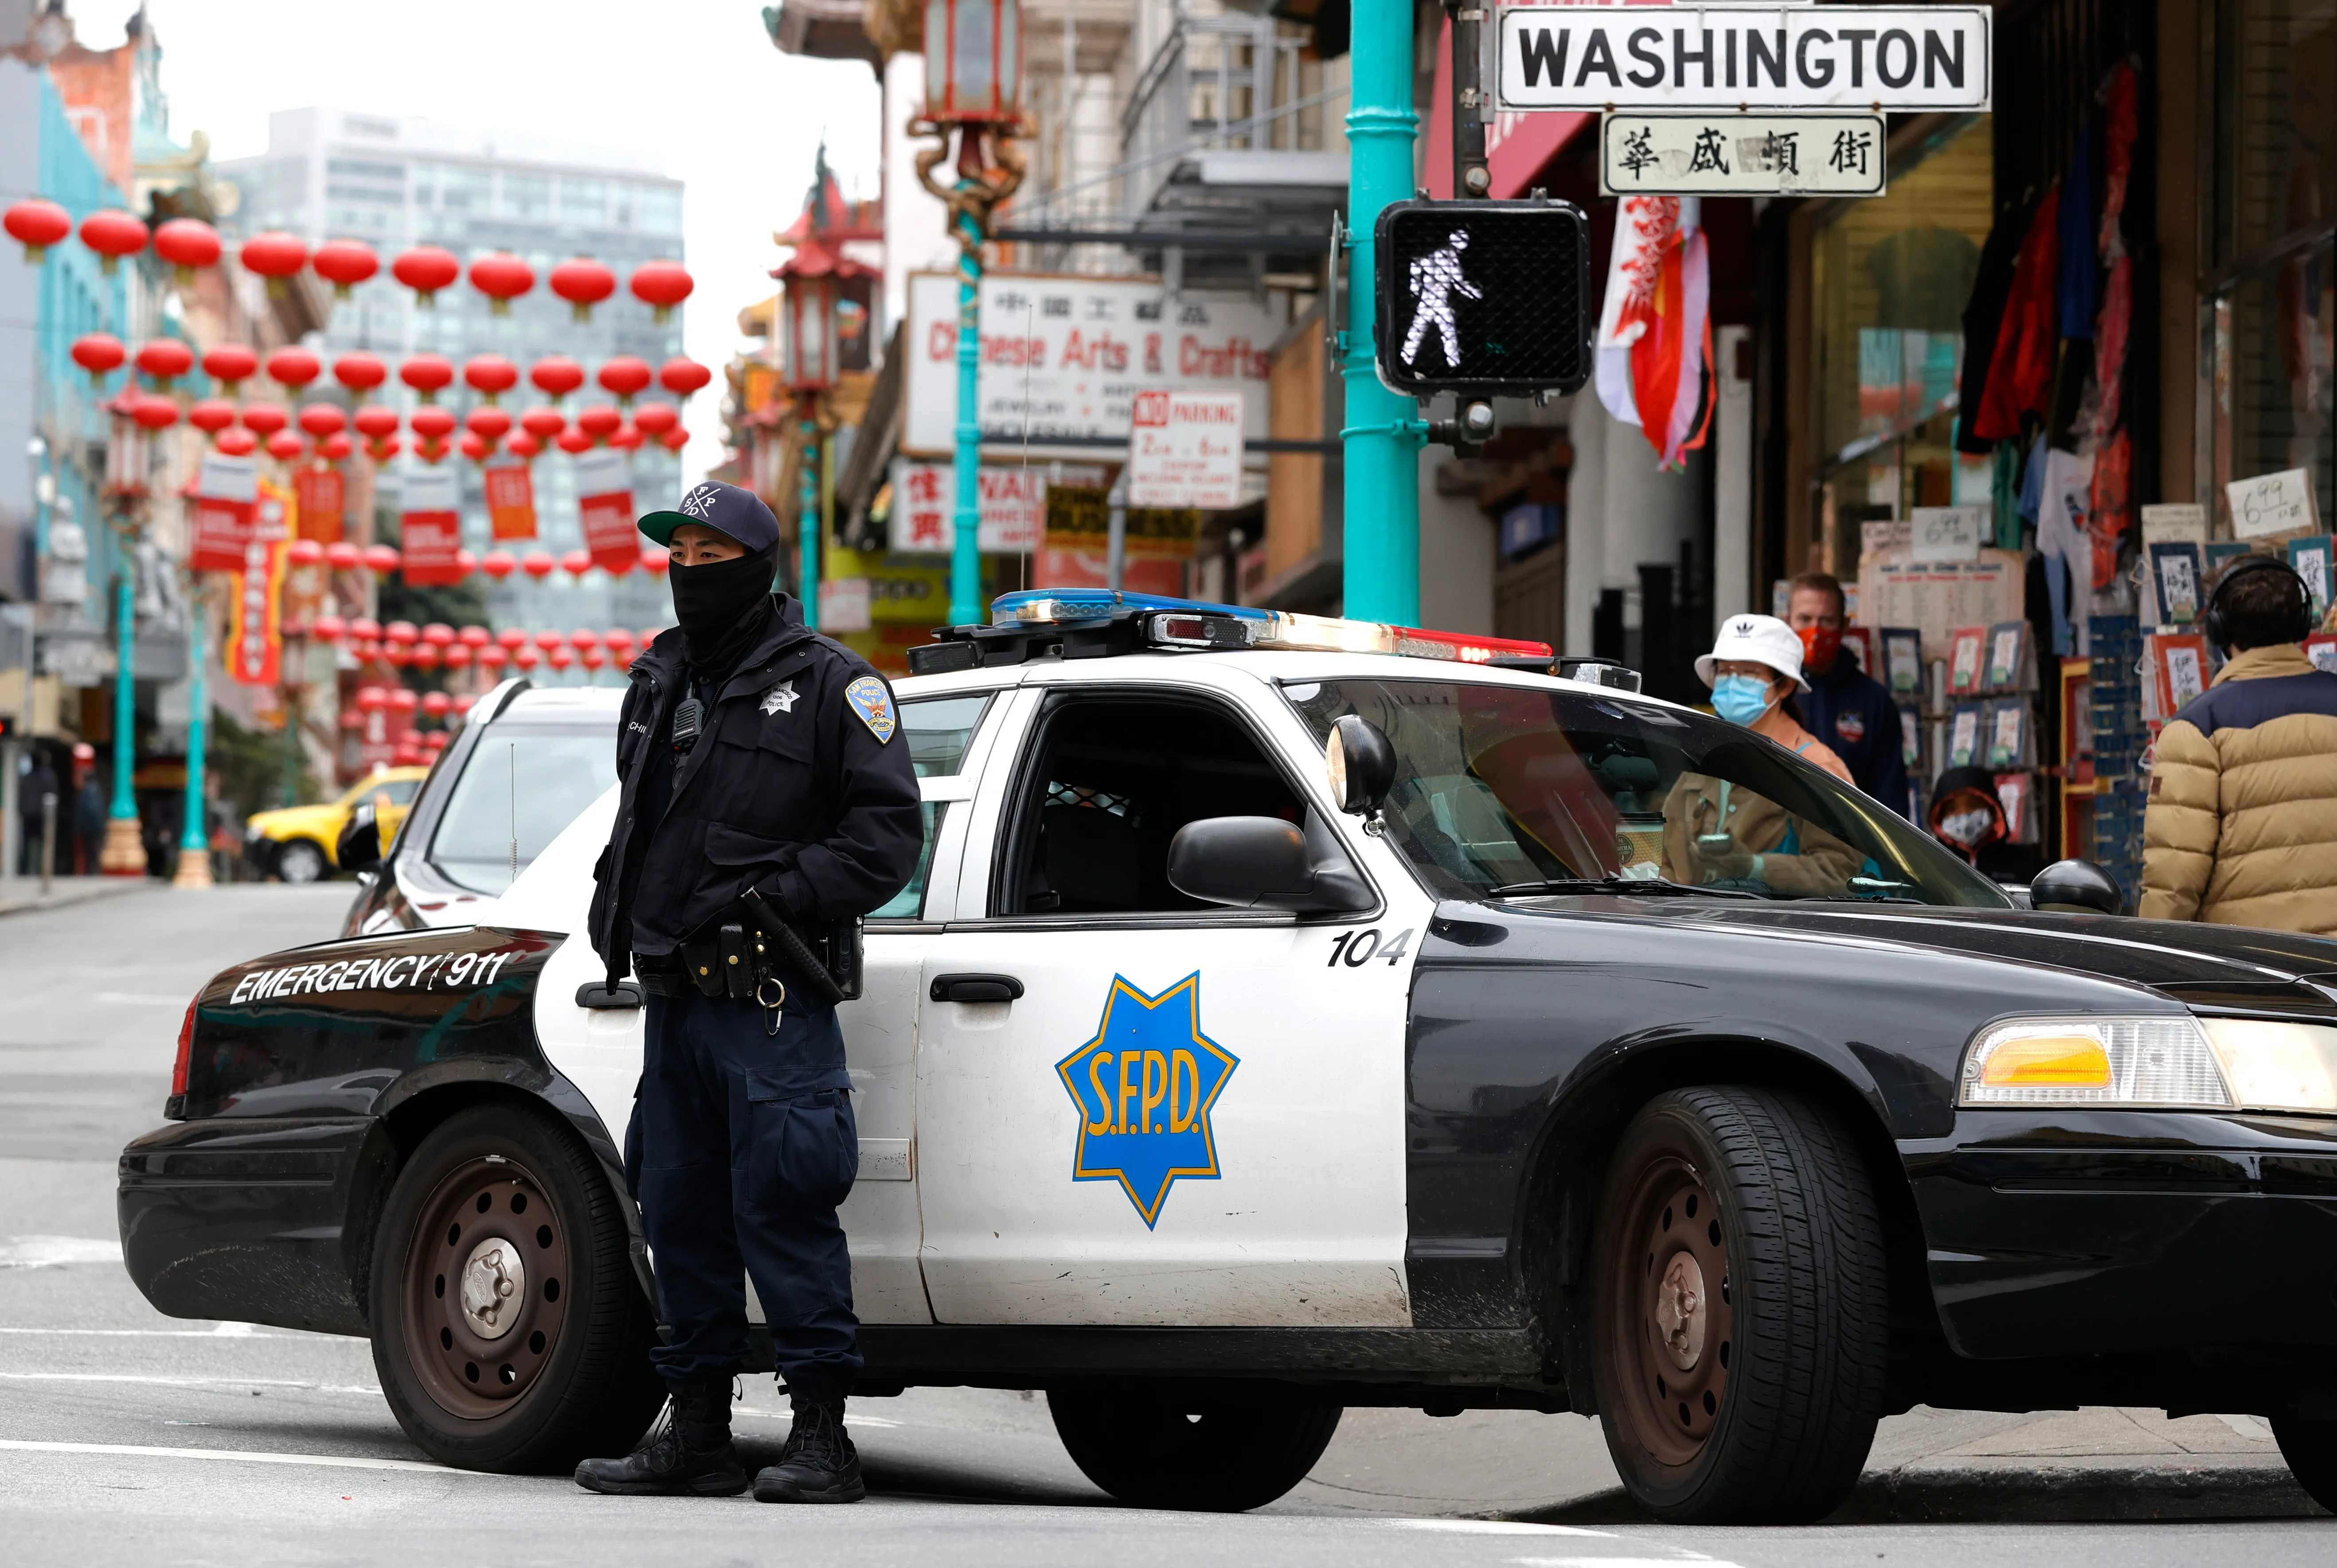 A San Francisco police officer stands guard on Grant Avenue in Chinatown on March 17, 2021 in San Francisco, California. The San Francisco police have stepped up patrols in Asian neighborhoods in the wake of a series of shootings at spas in the Atlanta area that left eight people dead, including six Asian women. The main suspect, Robert Aaron Long, 21, has been taken into custody. The San Francisco Bay Area is also seeing an increase in violence against the Asian community.